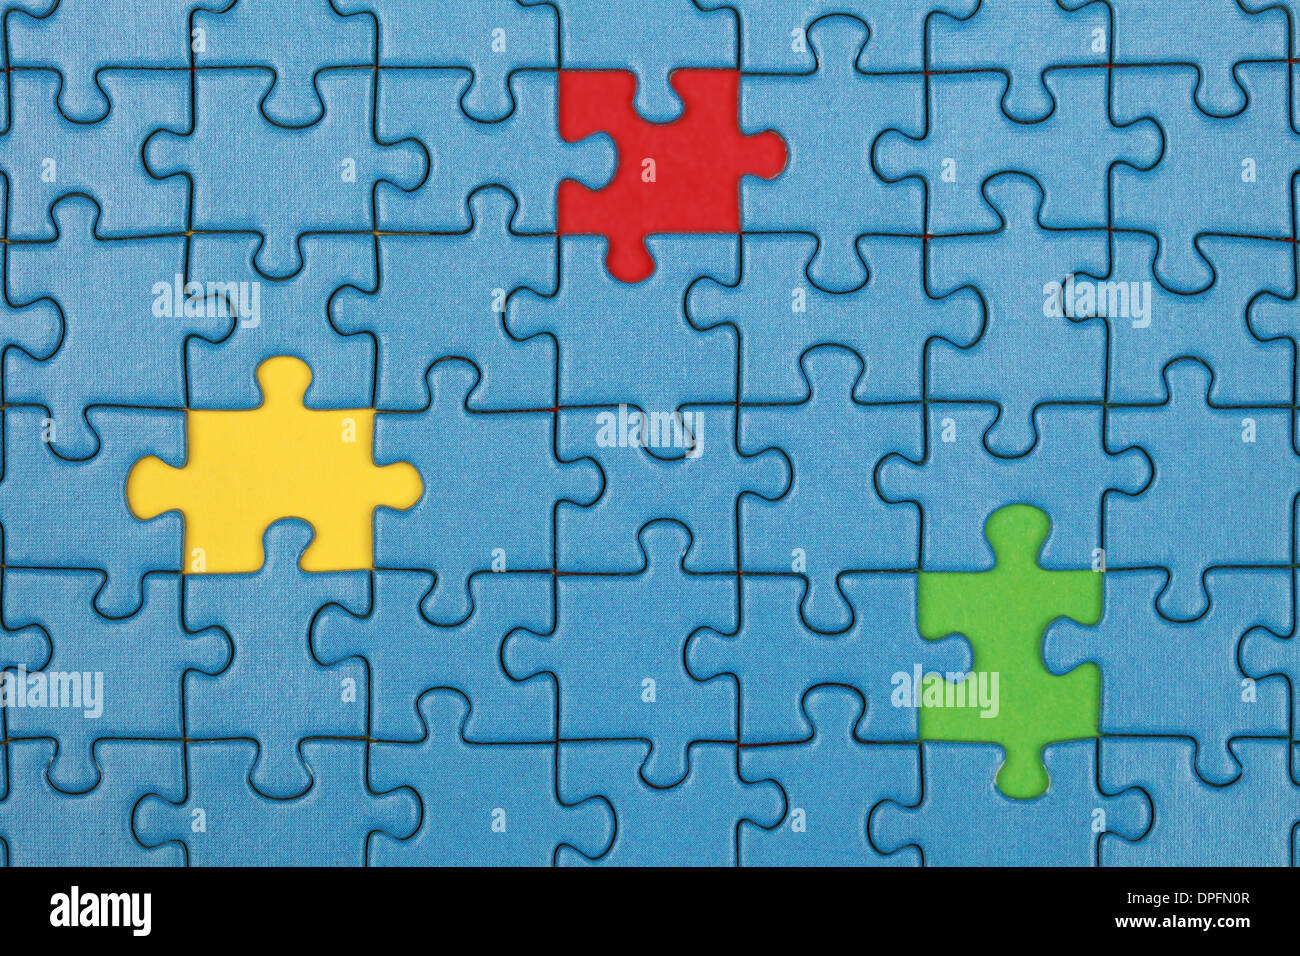 Jigsaw Puzzle with missing pieces in three different colors - Stock Image